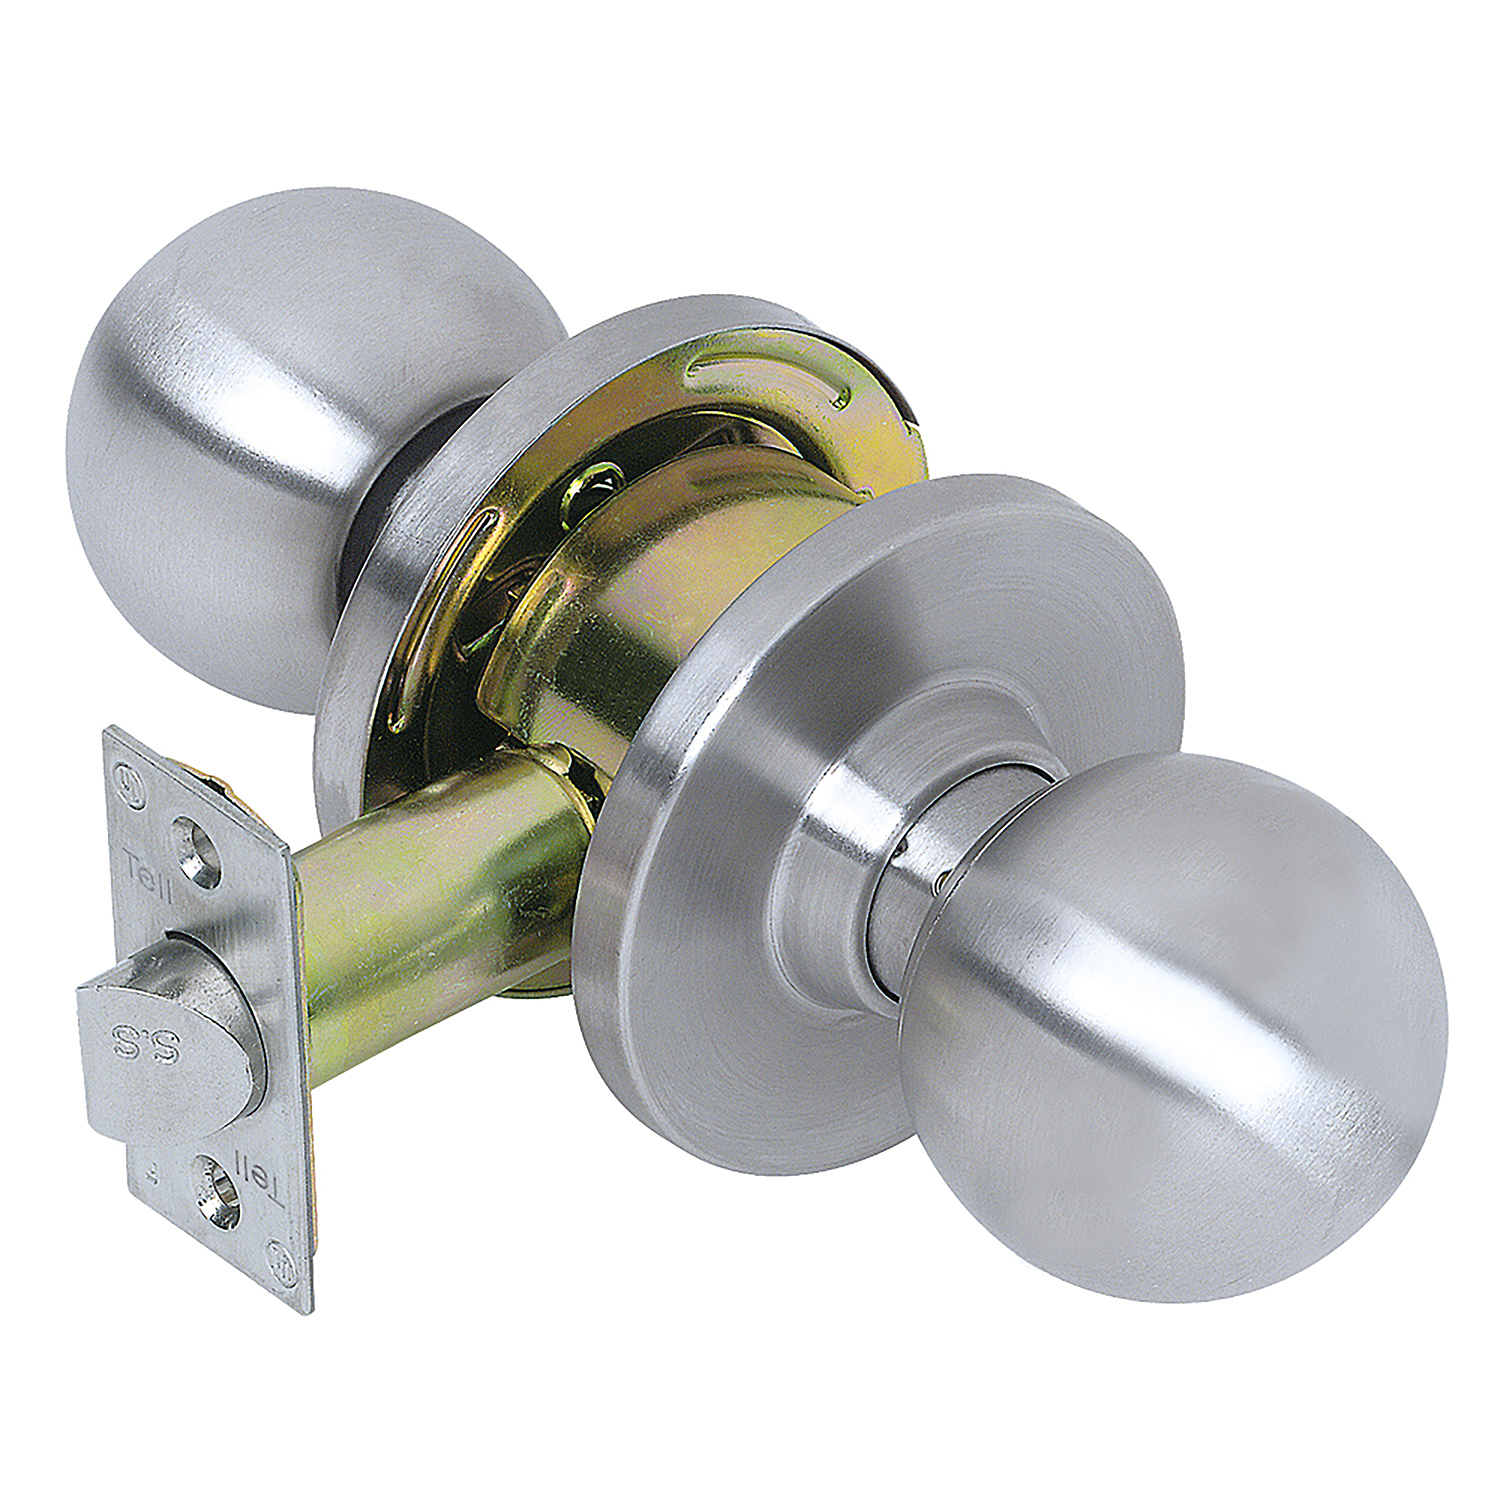 Tell Manufacturing CL100002 Satin Stainless Steel Heavy-Duty Commercial Passage Knob